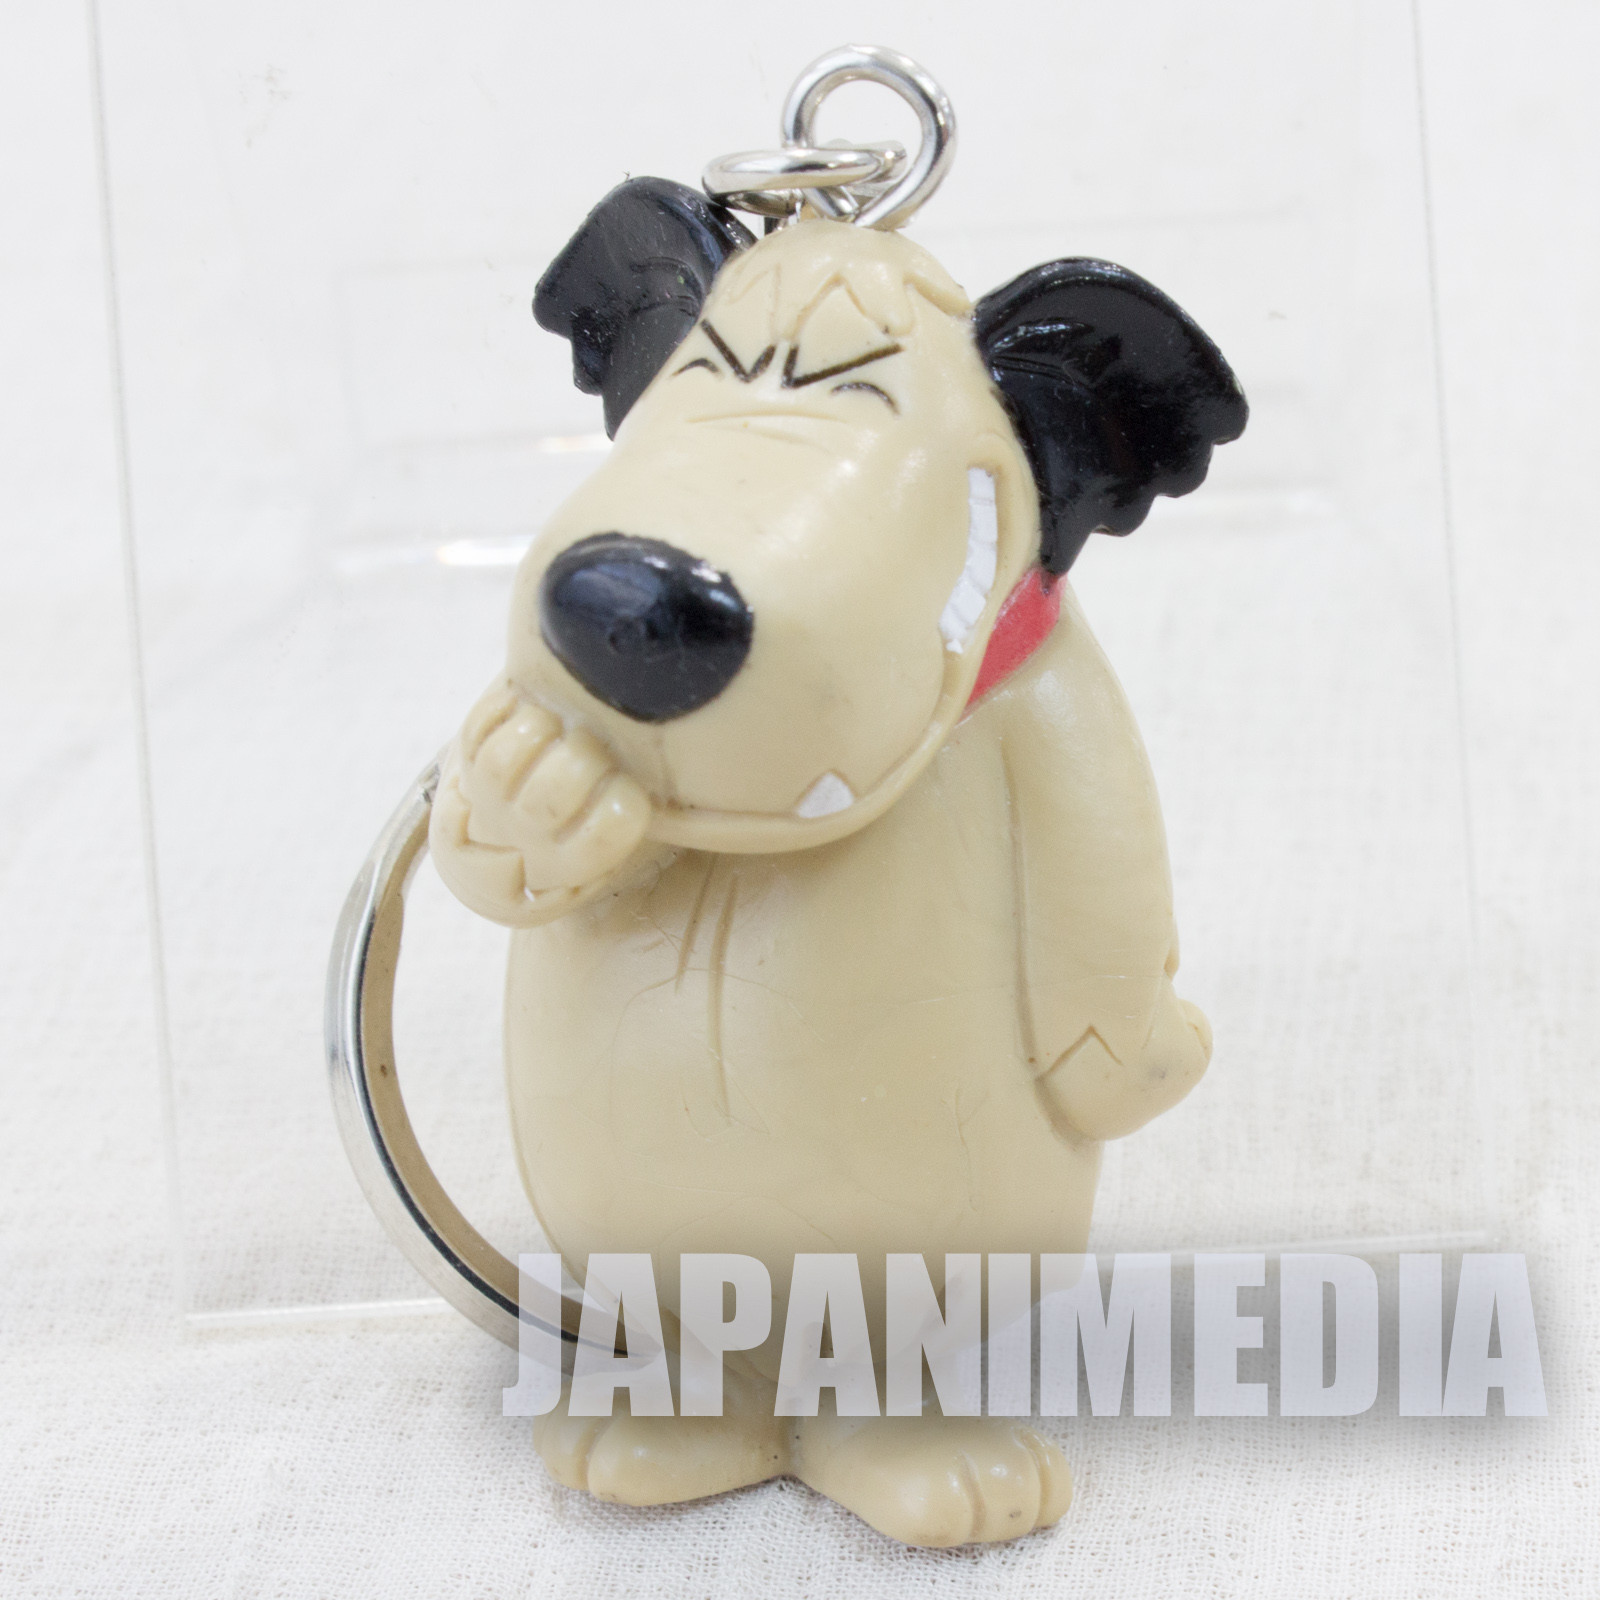 Wacky Races Muttley #2 Figure Keychain 1996 Banpresto JAPAN Hanna-Barbera